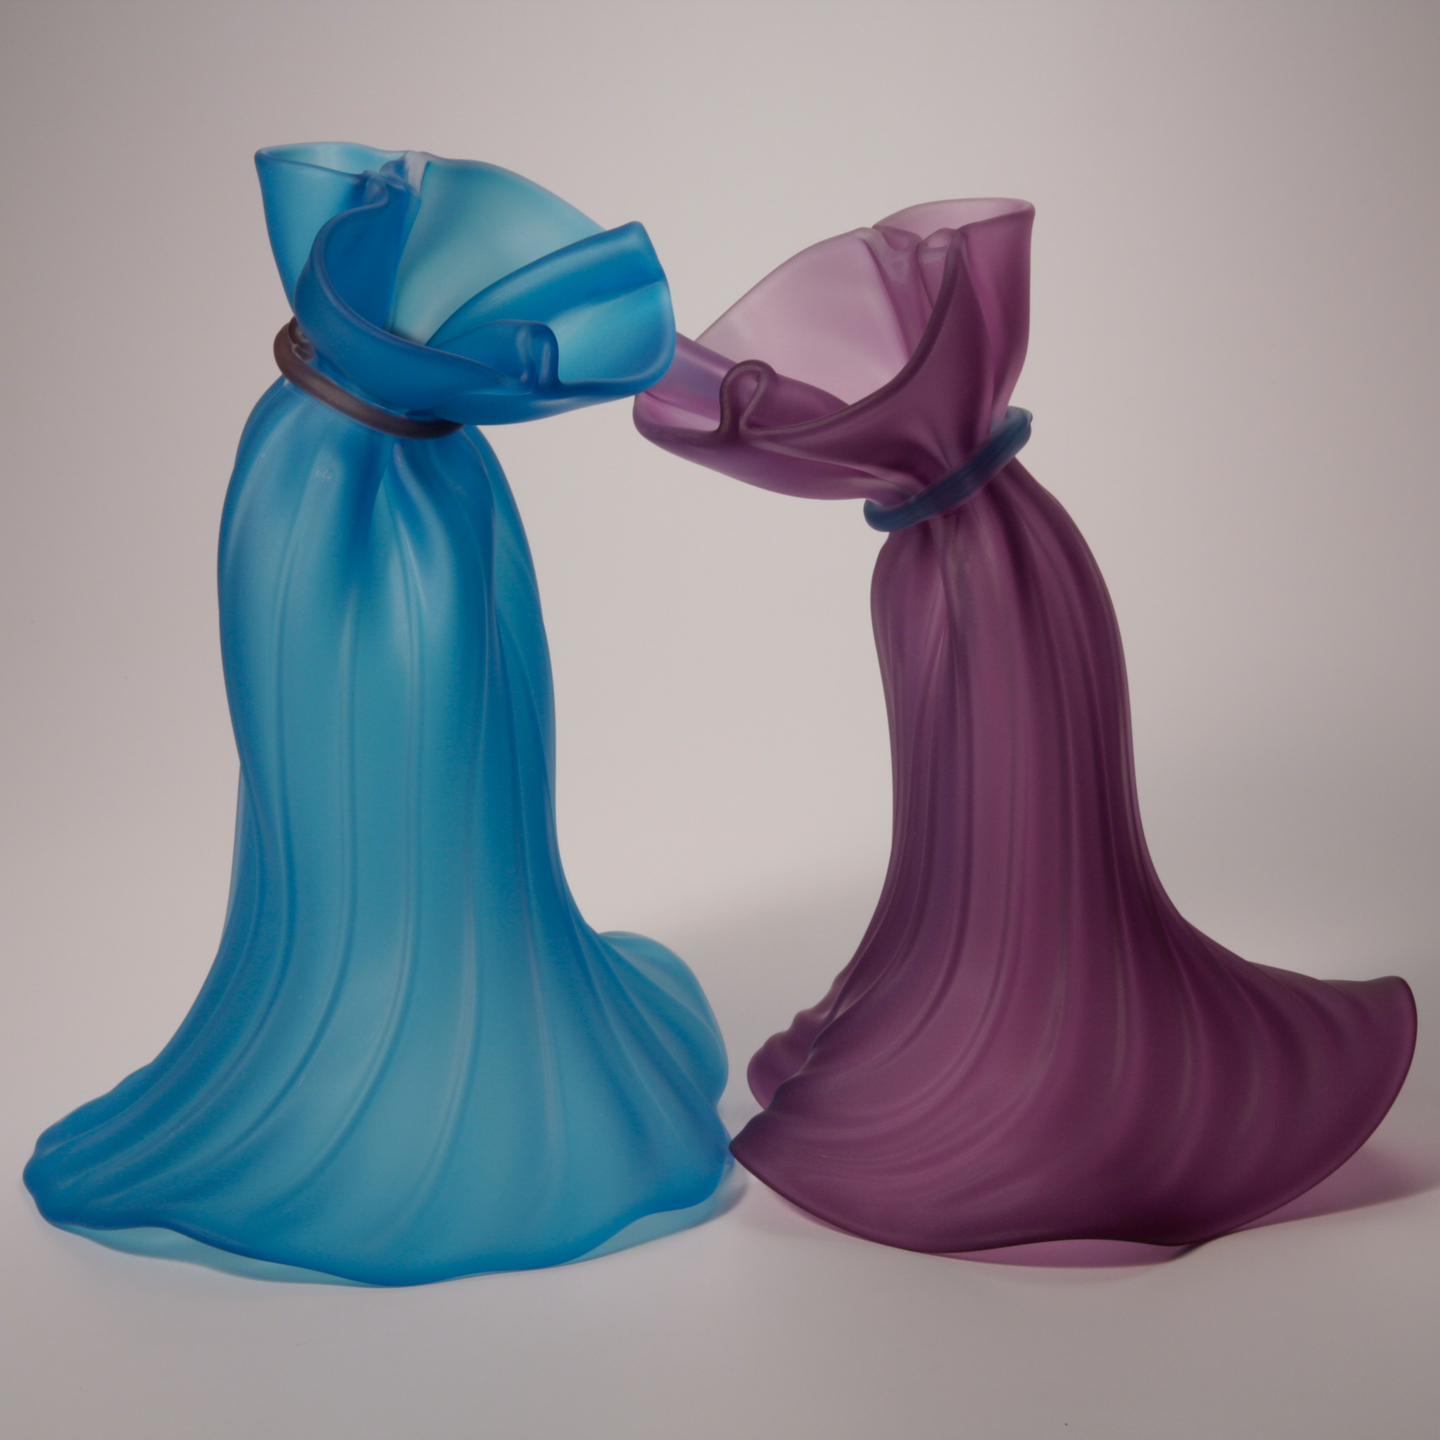 A pair of glass fabric-like forms alluding to dancers in blue and purple.